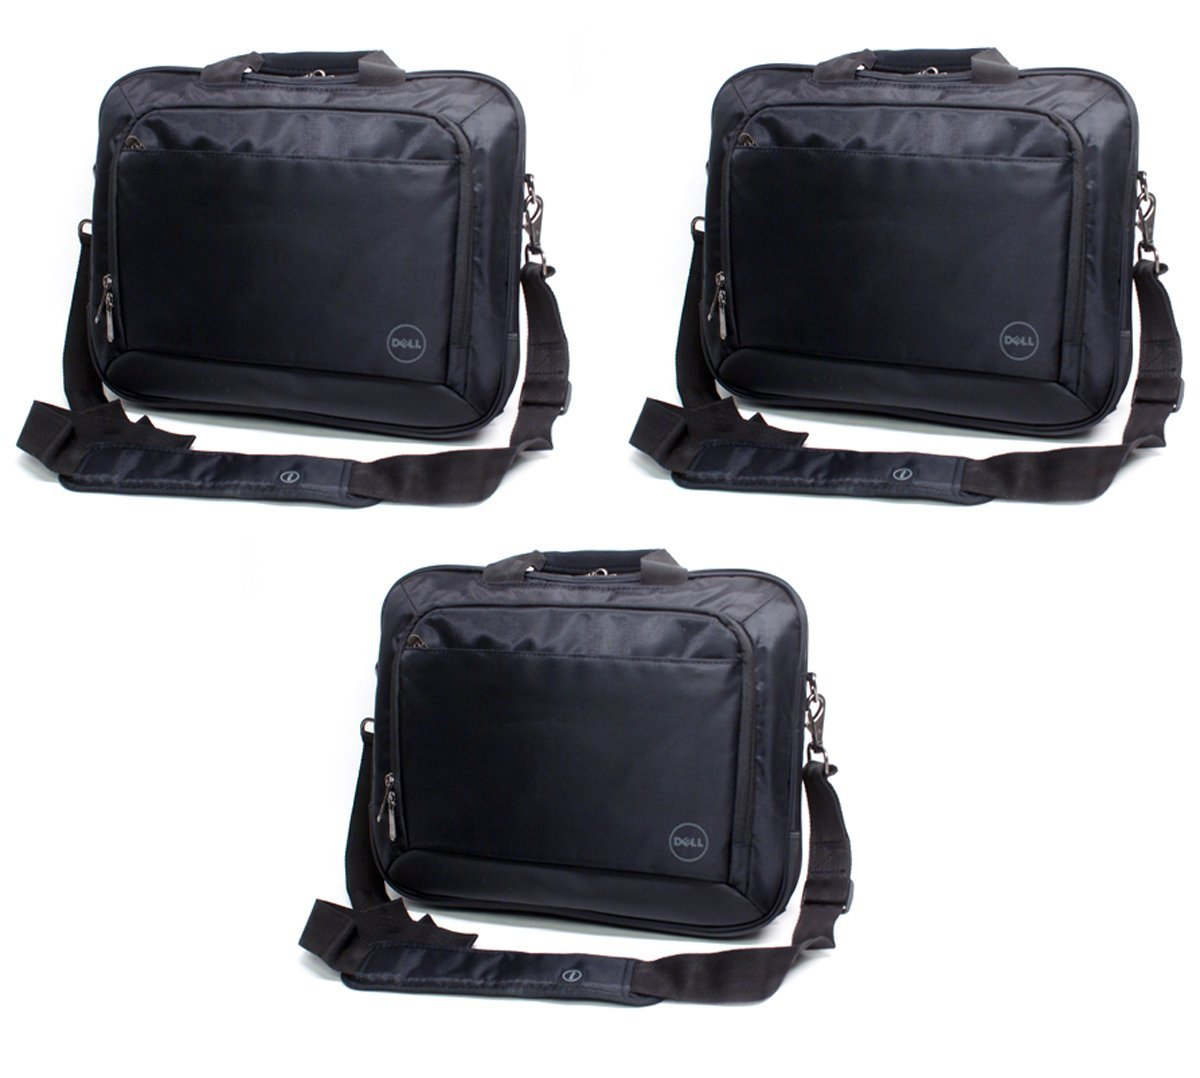 """3-LOT Bulk Genuine Dell T43DV 14""""Inch Black Nylon Business Work Office Laptop Notebook Carry-Case Bag Tote Messenger Bag with Shoulder Strap Fits up to 14"""" Screens or Smaller"""